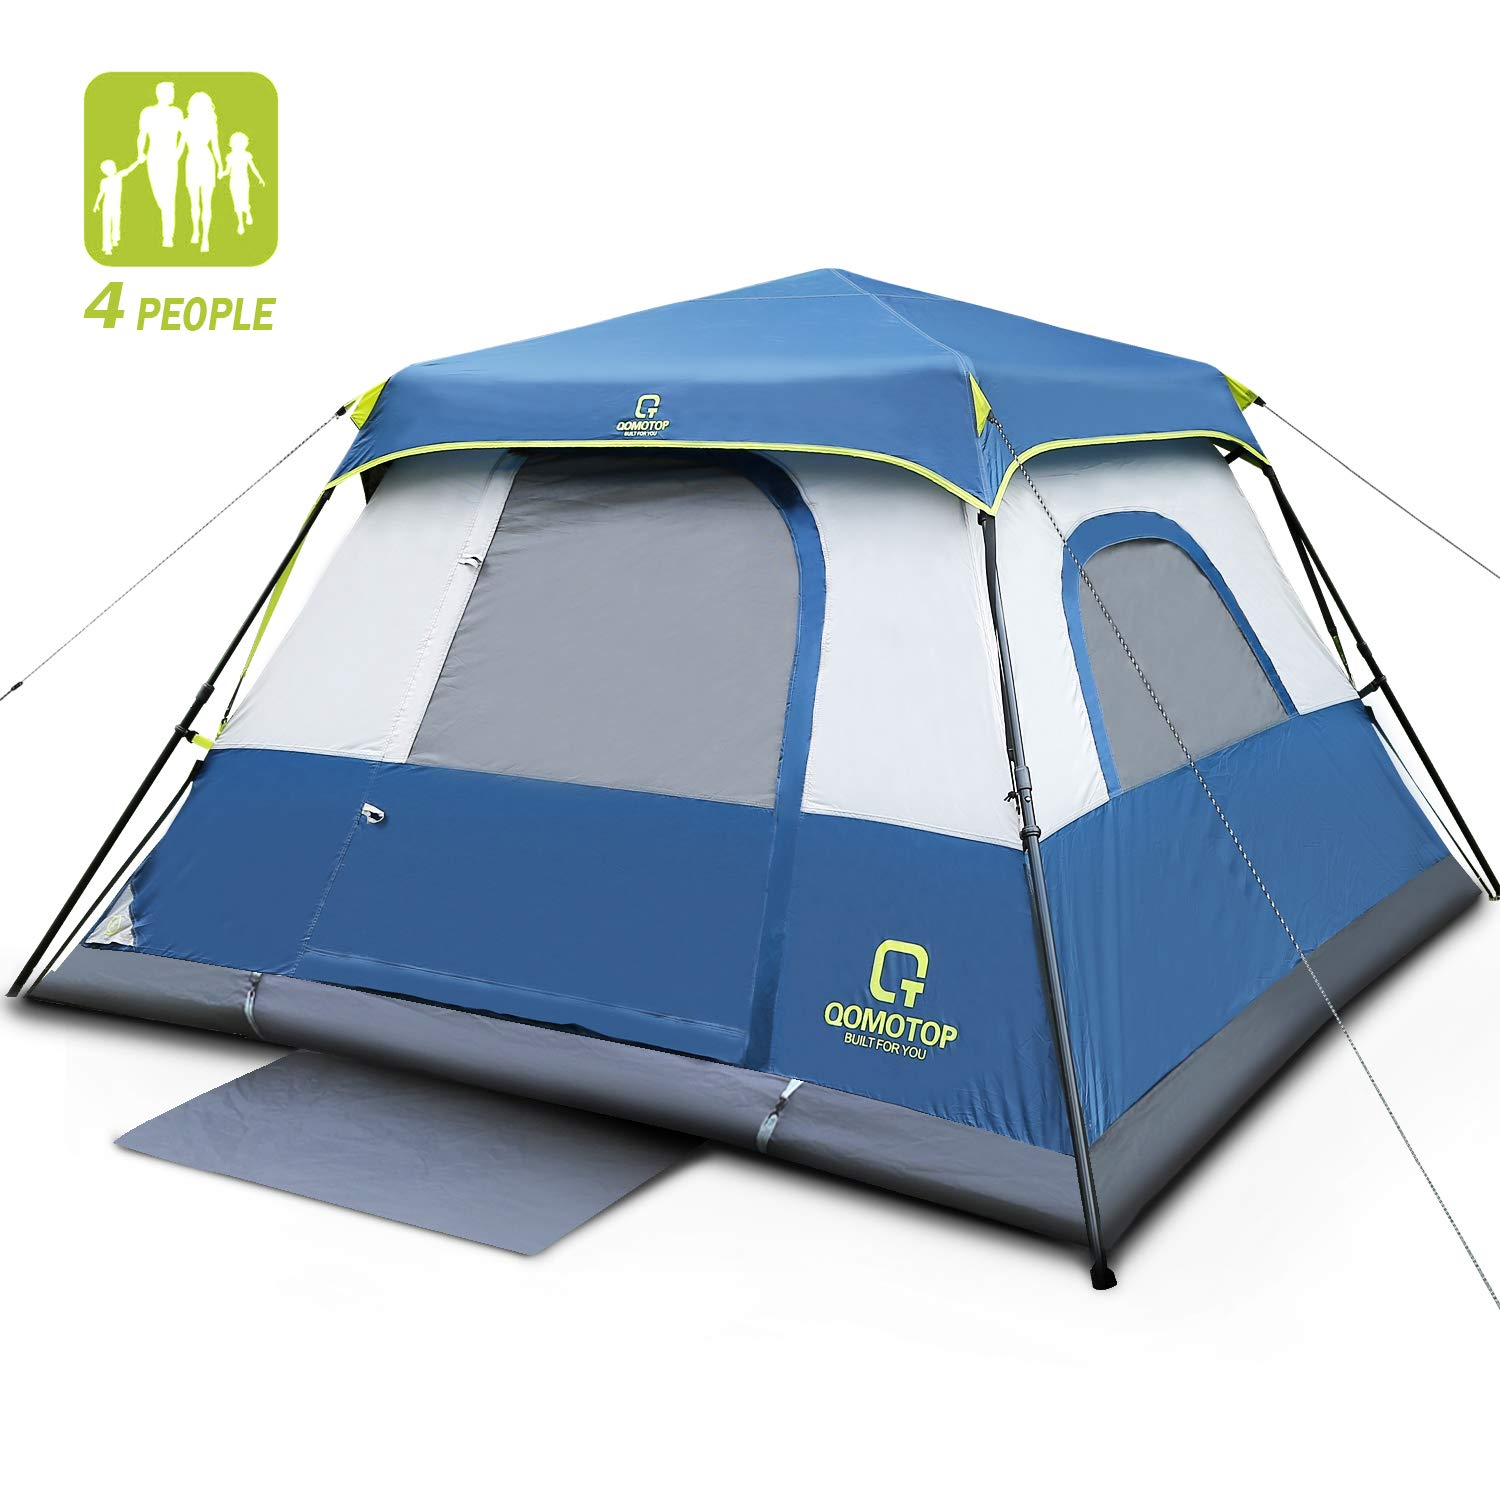 OT QOMOTOP Cabin Tent 4 People Smooth Ventilation Seamless Gap Rainproof Top Rainfly Gate Mat 1 Minute Set Up Sturdy Frame 8 x 8 Feet Camping Tent Electrical Cord Access Port